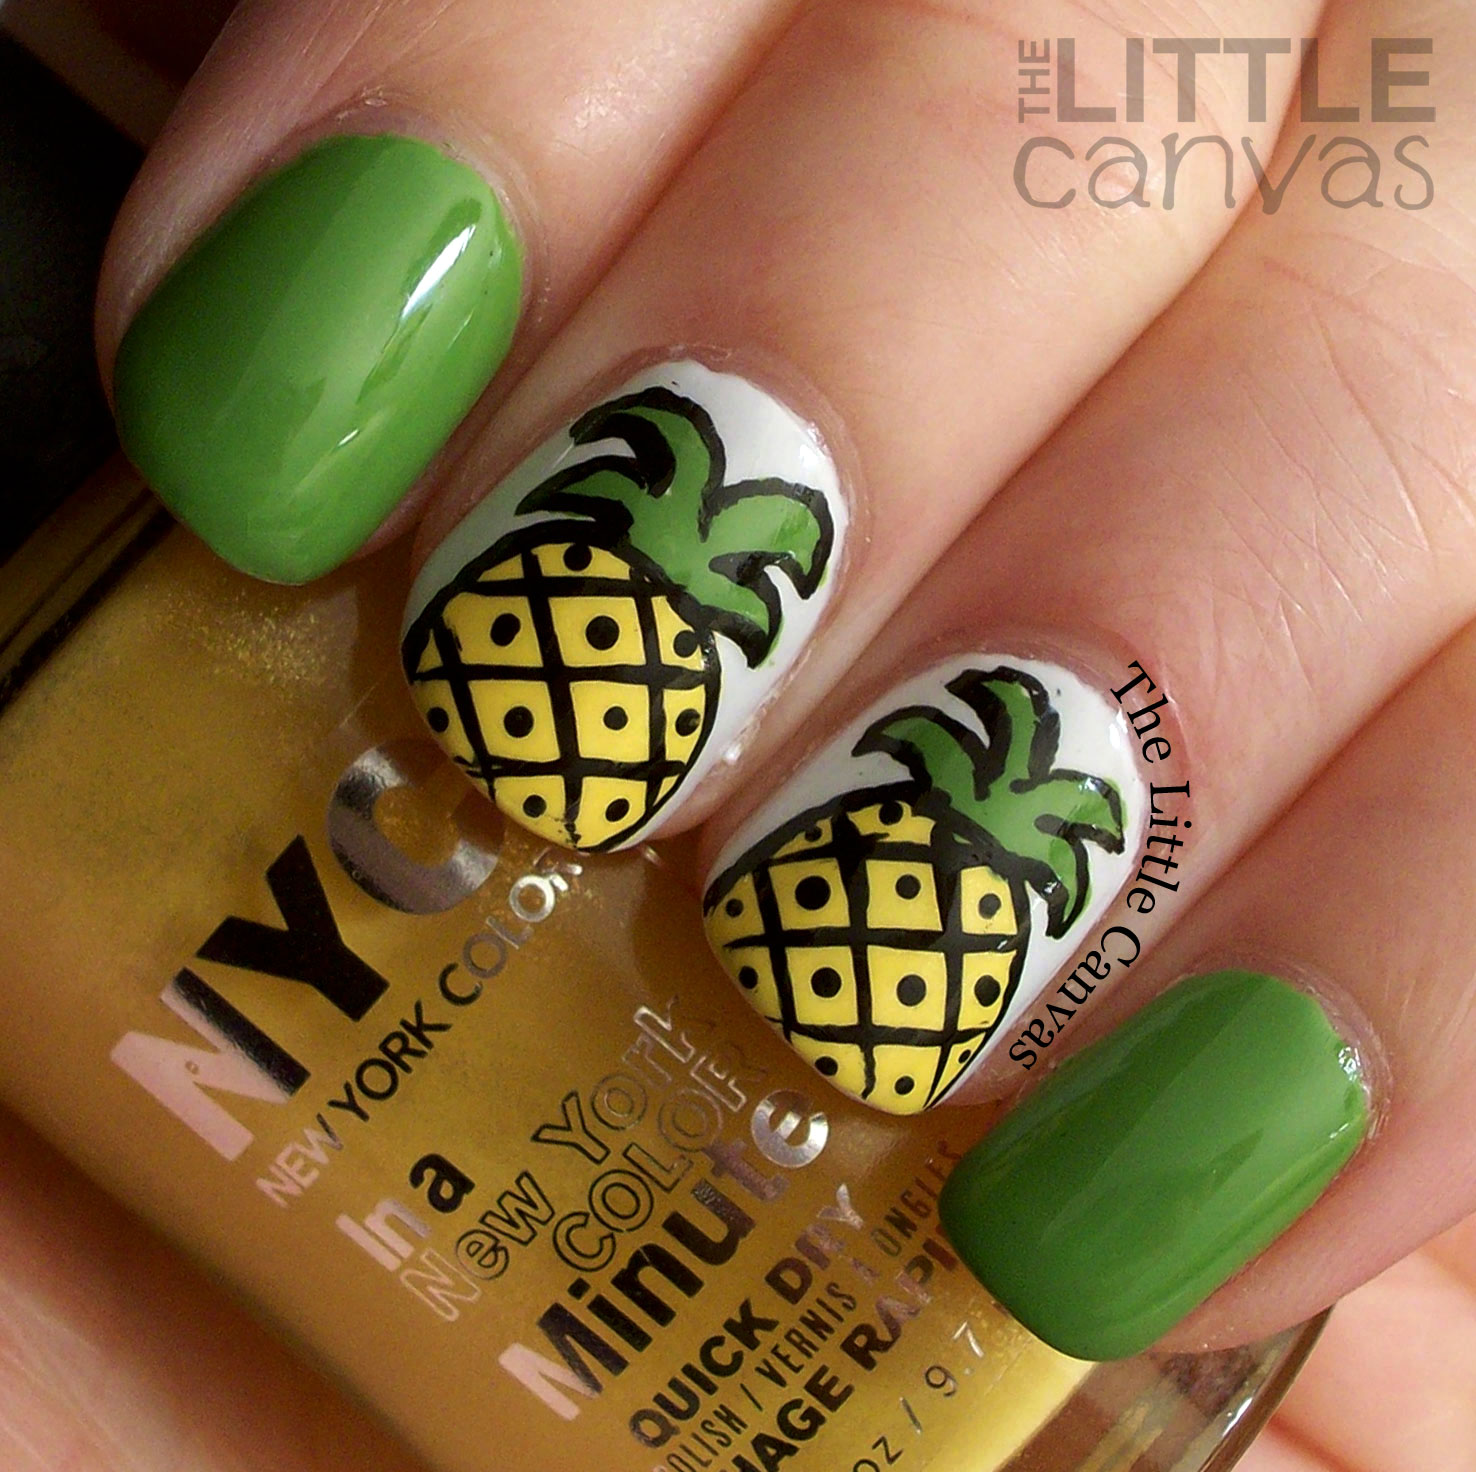 pineapple nail art design 1 24 Beautiful Pineapple Nail Art Designs 2015 24 Beautiful Pineapple Nail Art Designs 2015 pineapple nail art design 1